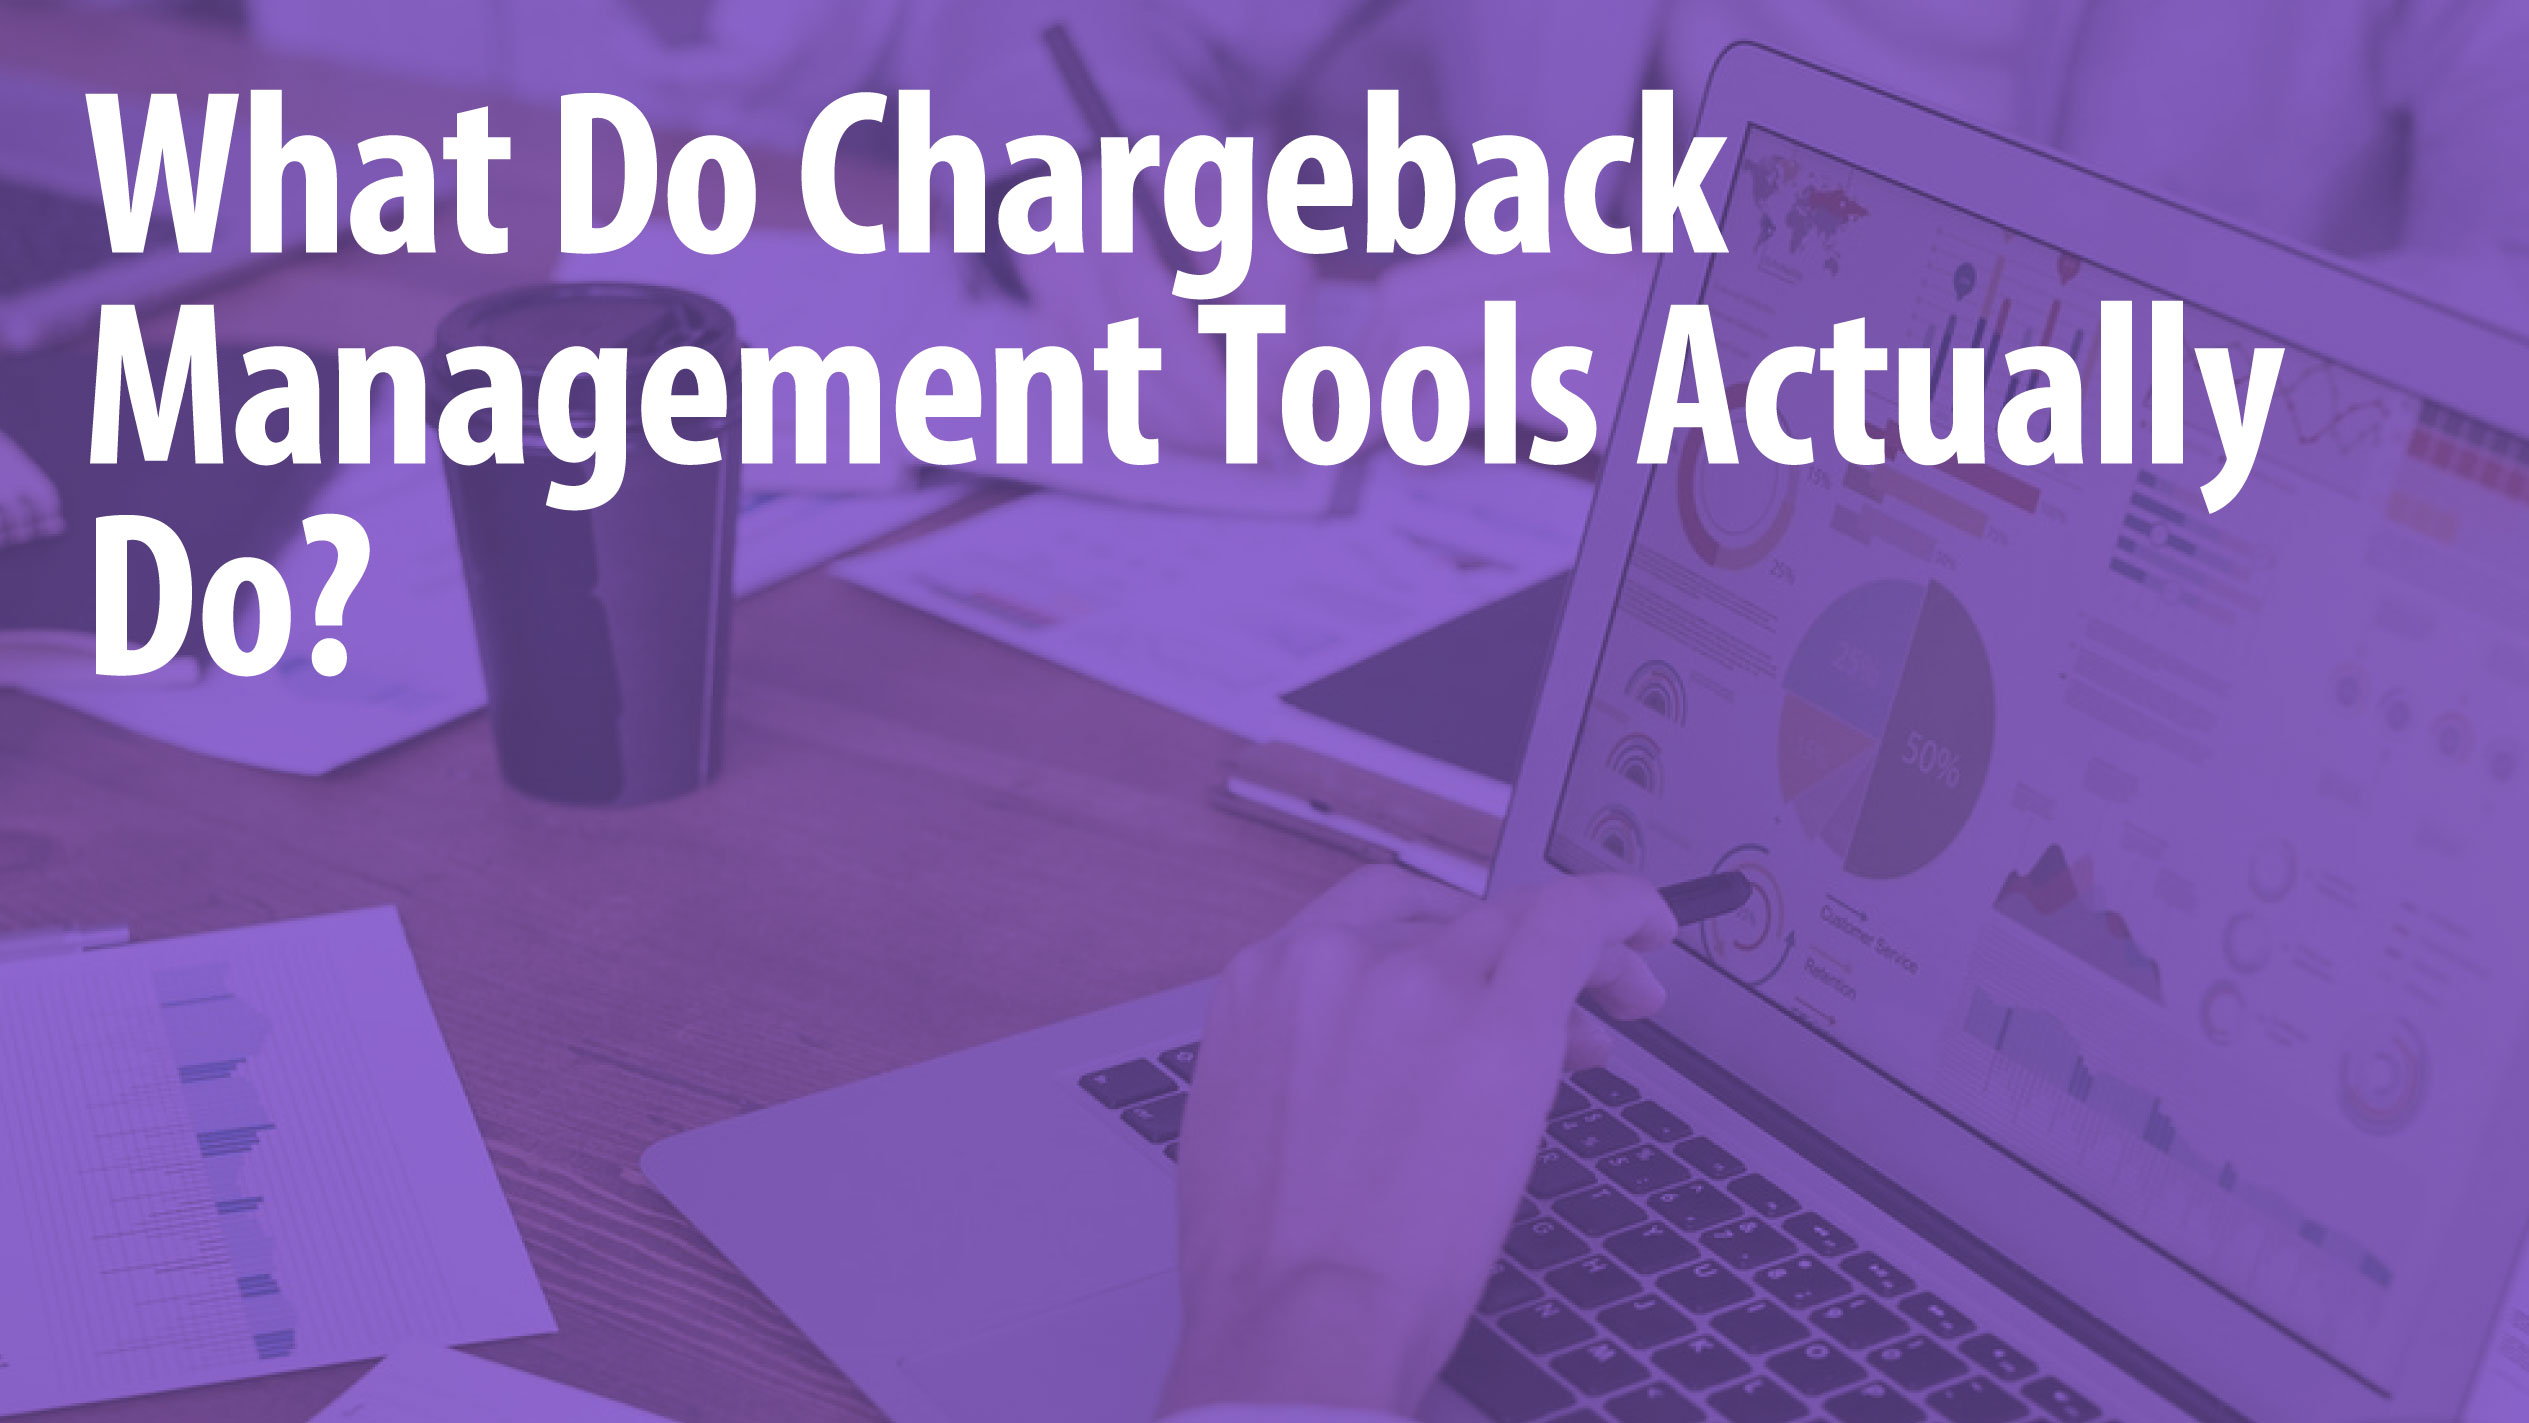 What Do Chargeback Management Tools Actually Do?